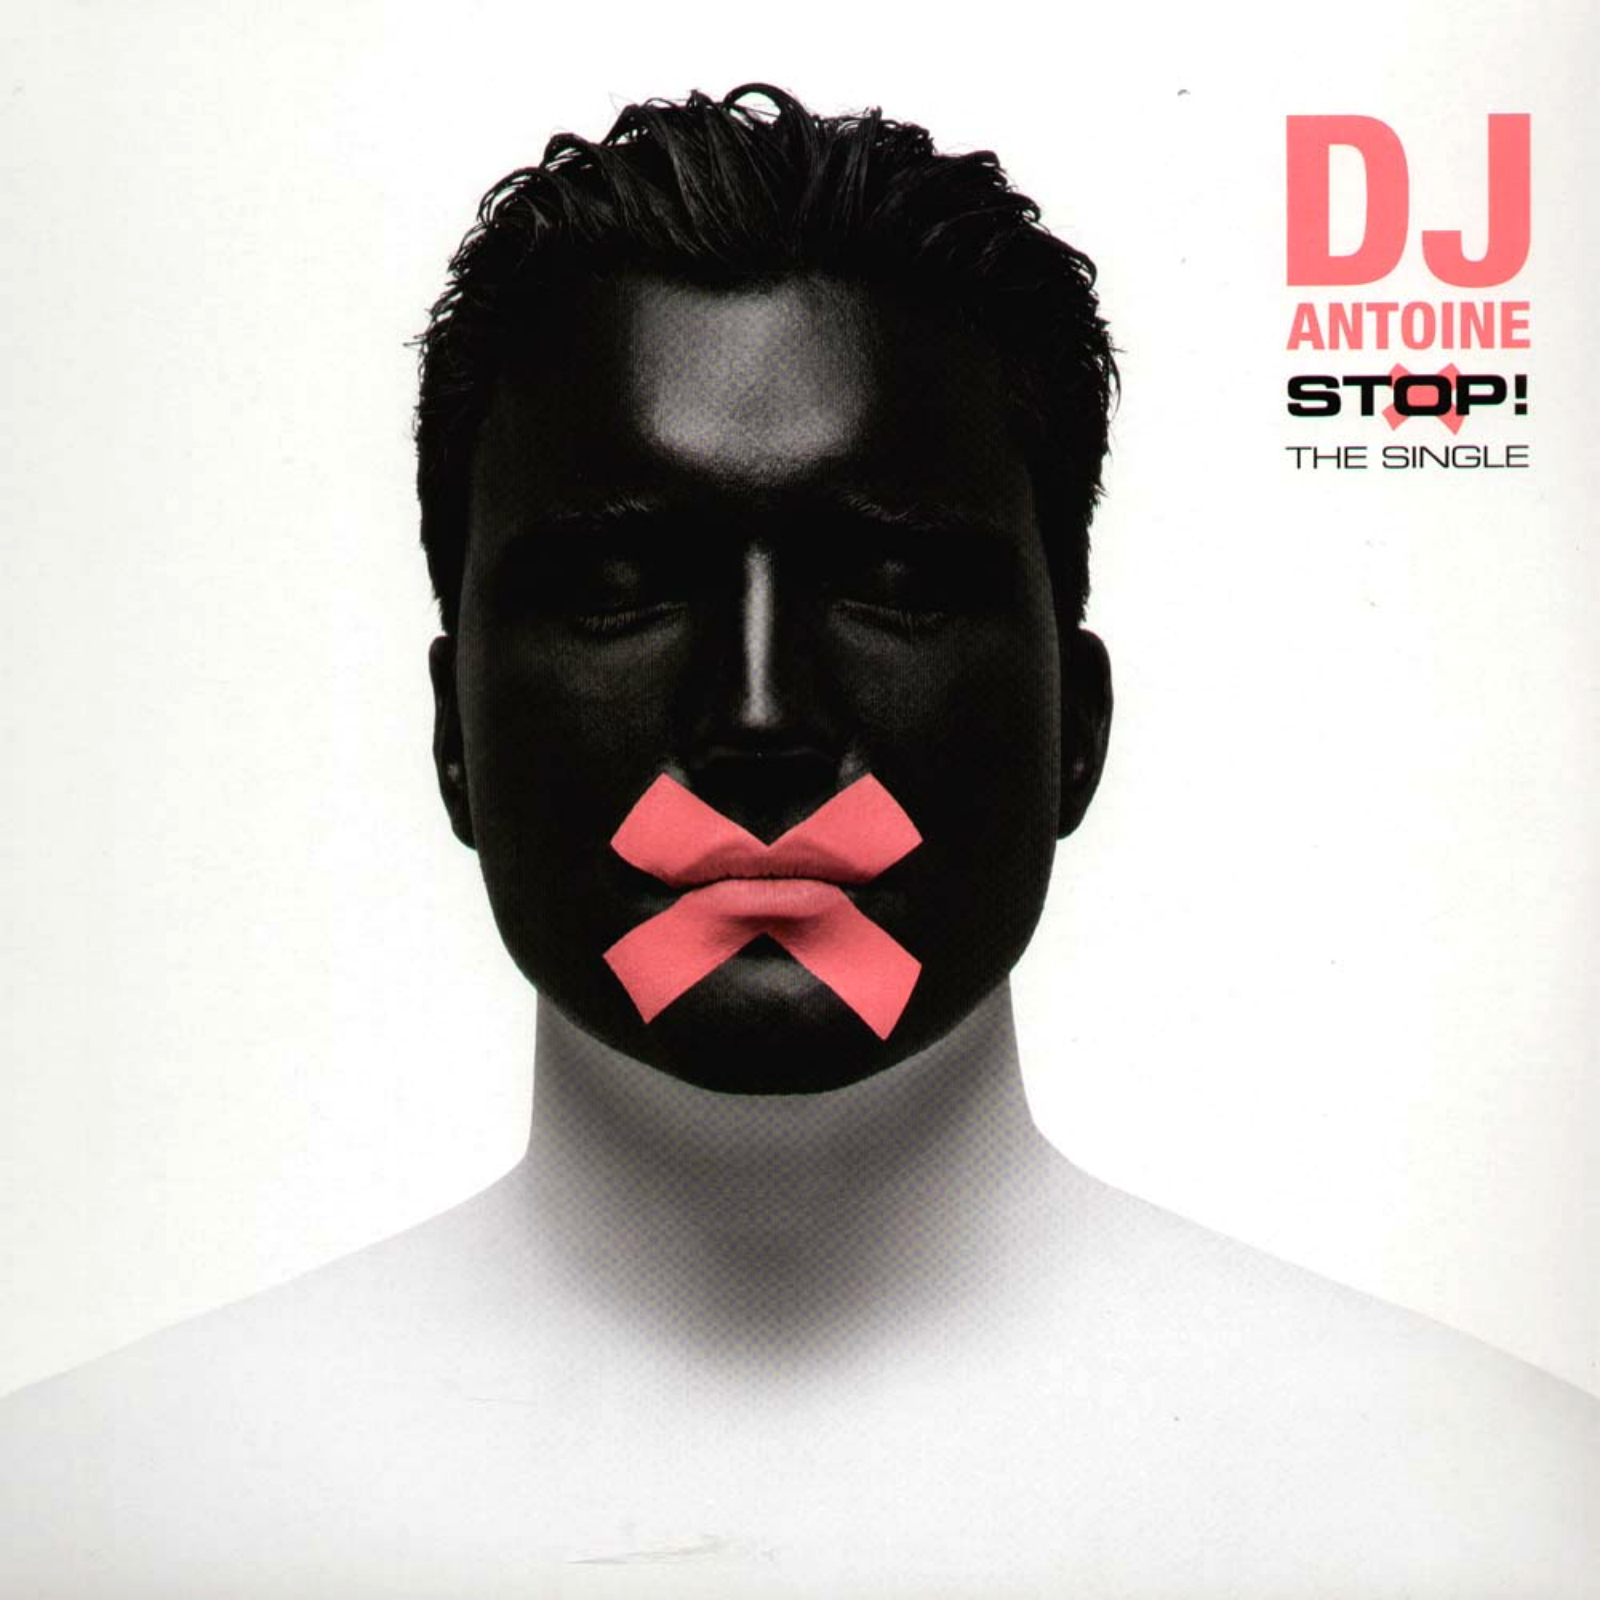 http://1.bp.blogspot.com/-FFwlCzAUan4/T-hantzBWrI/AAAAAAAACRk/Z-5PL4cH26E/s1600/Dj_Antoine_Stop_The_Single_Cover_HD_Wallpaper-Vvallpaper.Net.jpg